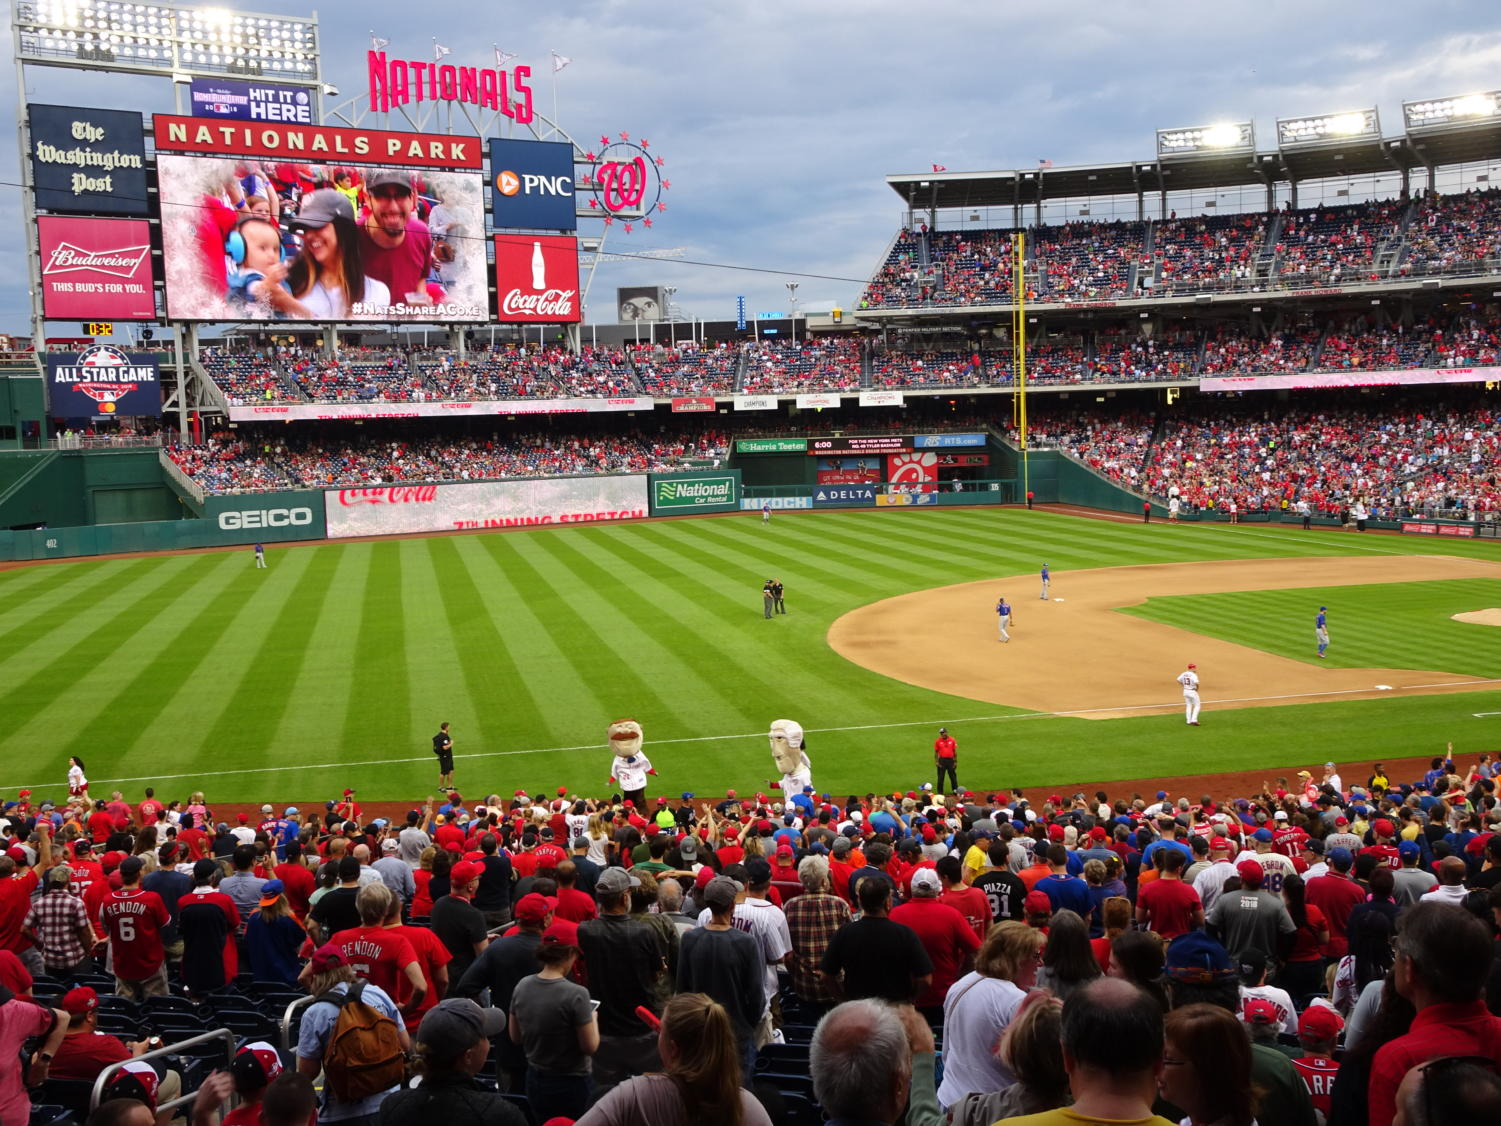 The Washington Nationals are heading to their first ever World Series.